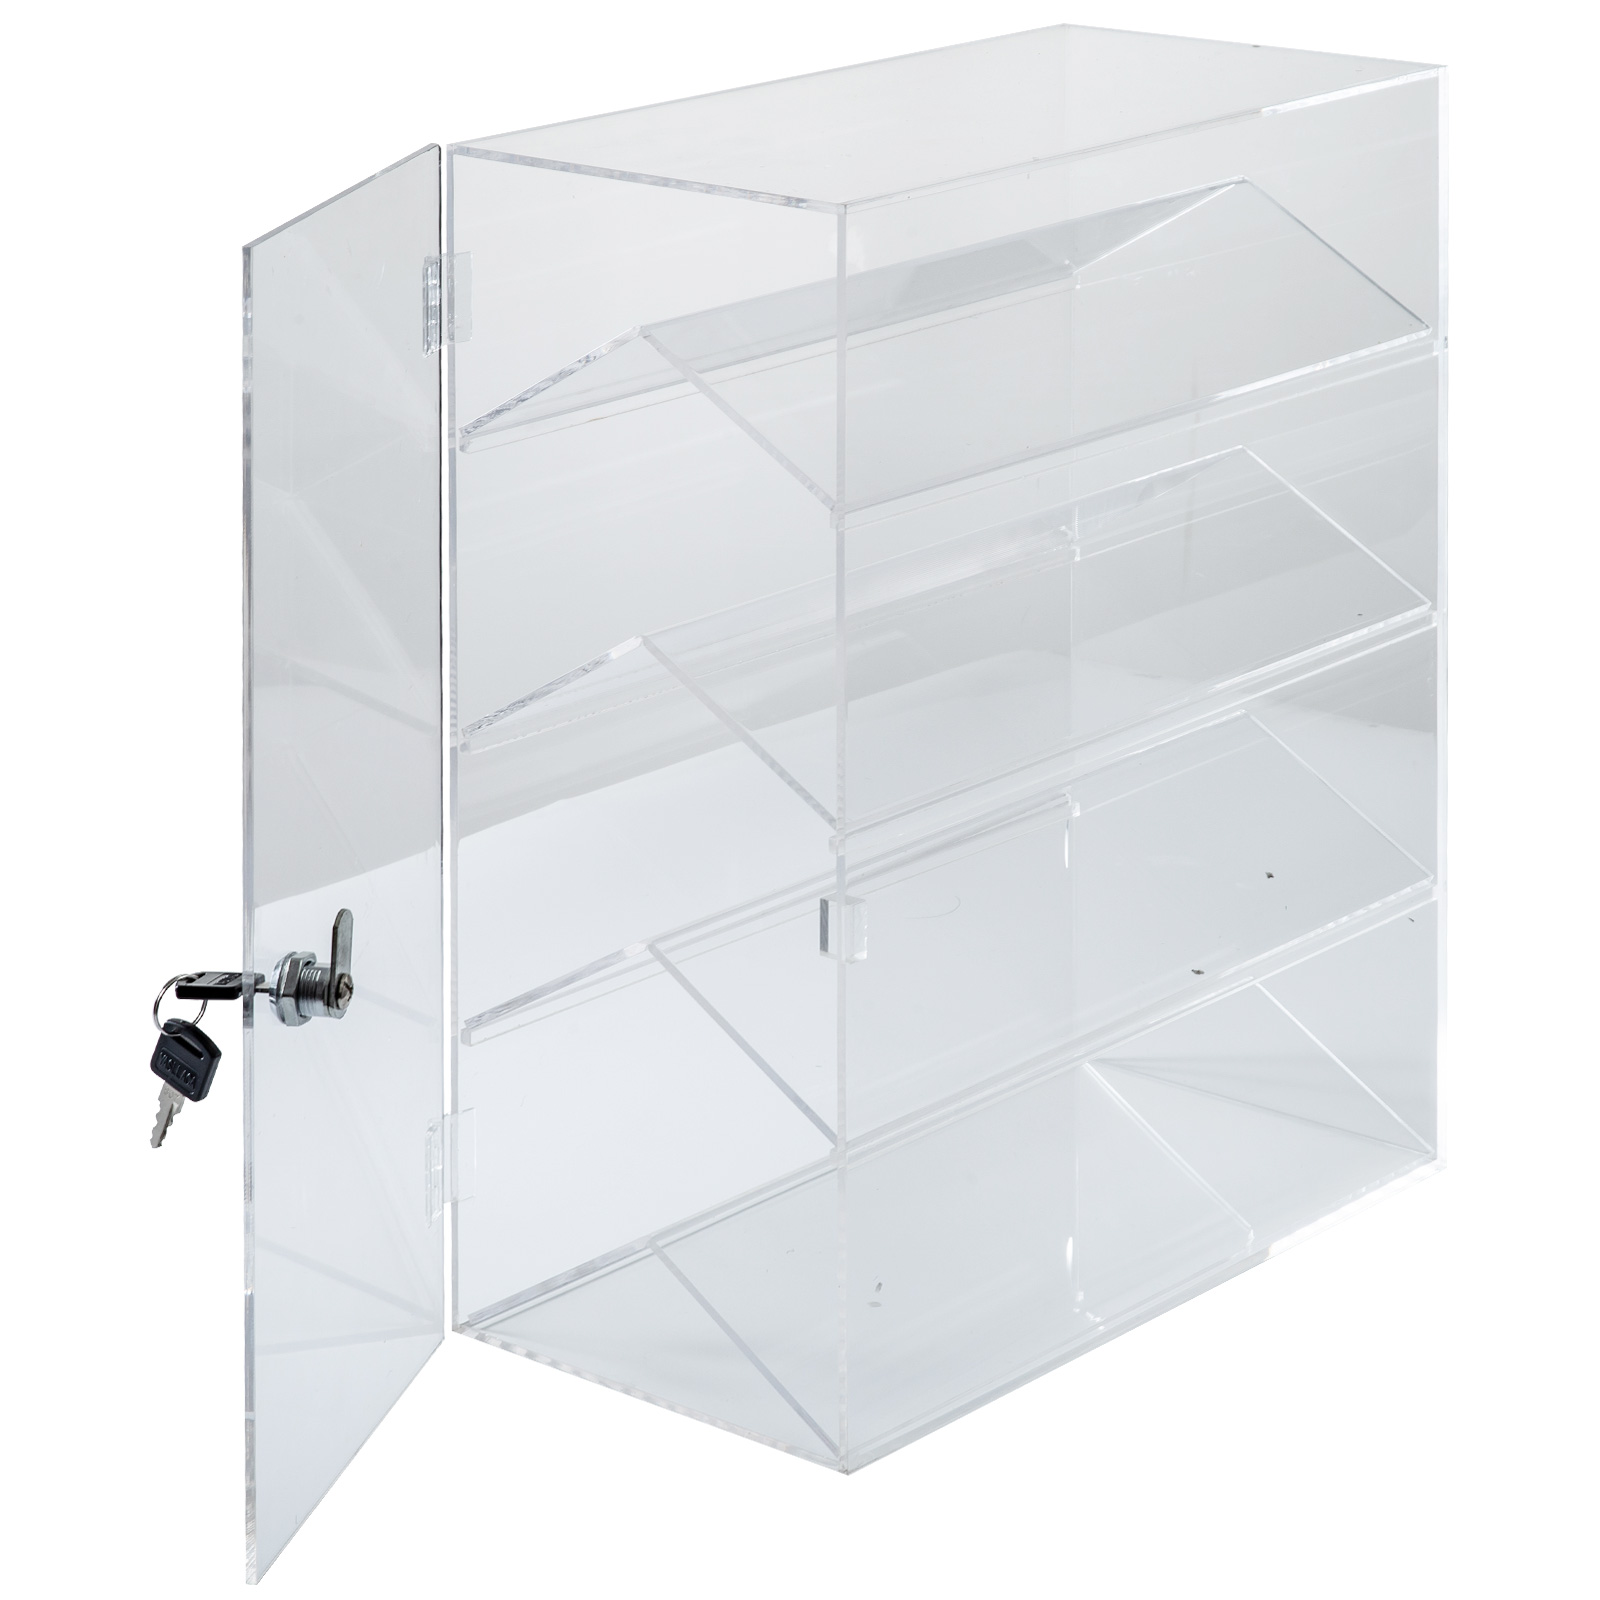 thumbnail 141 - 2-3-4-Shelves-Acrylic-Display-Cabinet-Glued-Unassembled-Bakery-Clear-Pastry